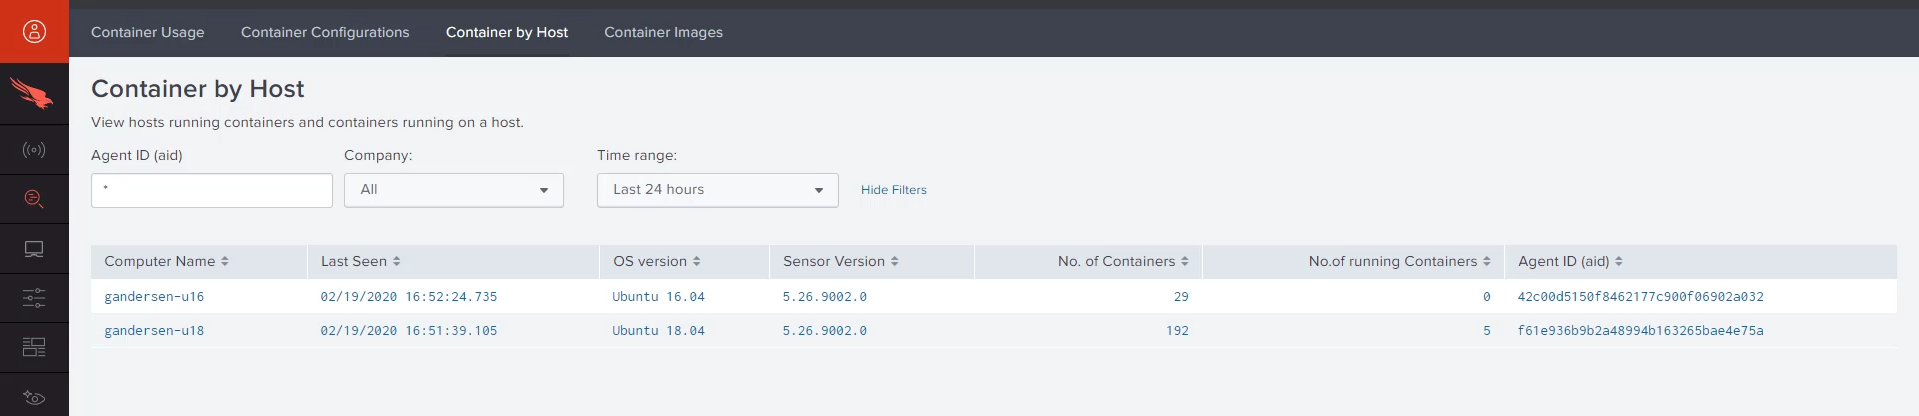 container host dashboard